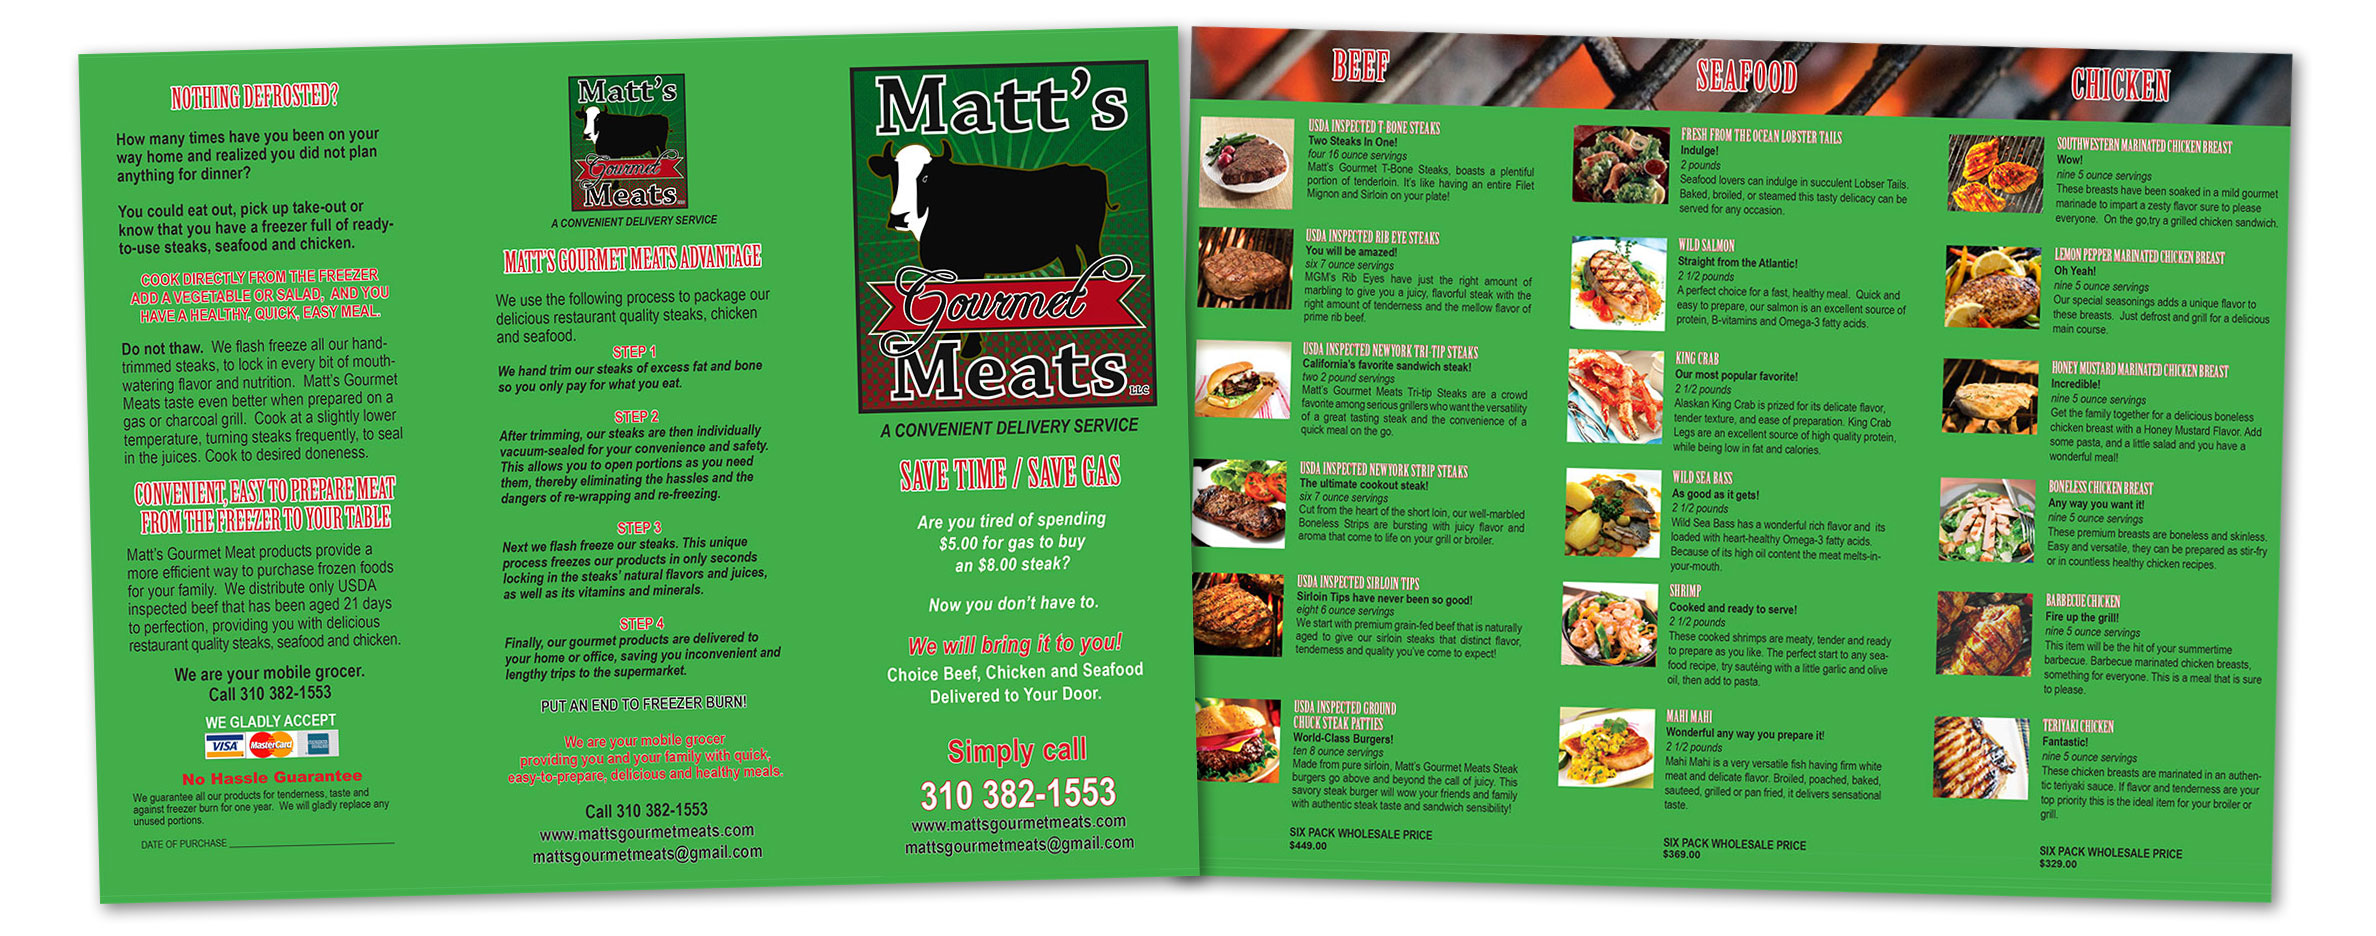 Resturant Menus Print Bullseye Marketing